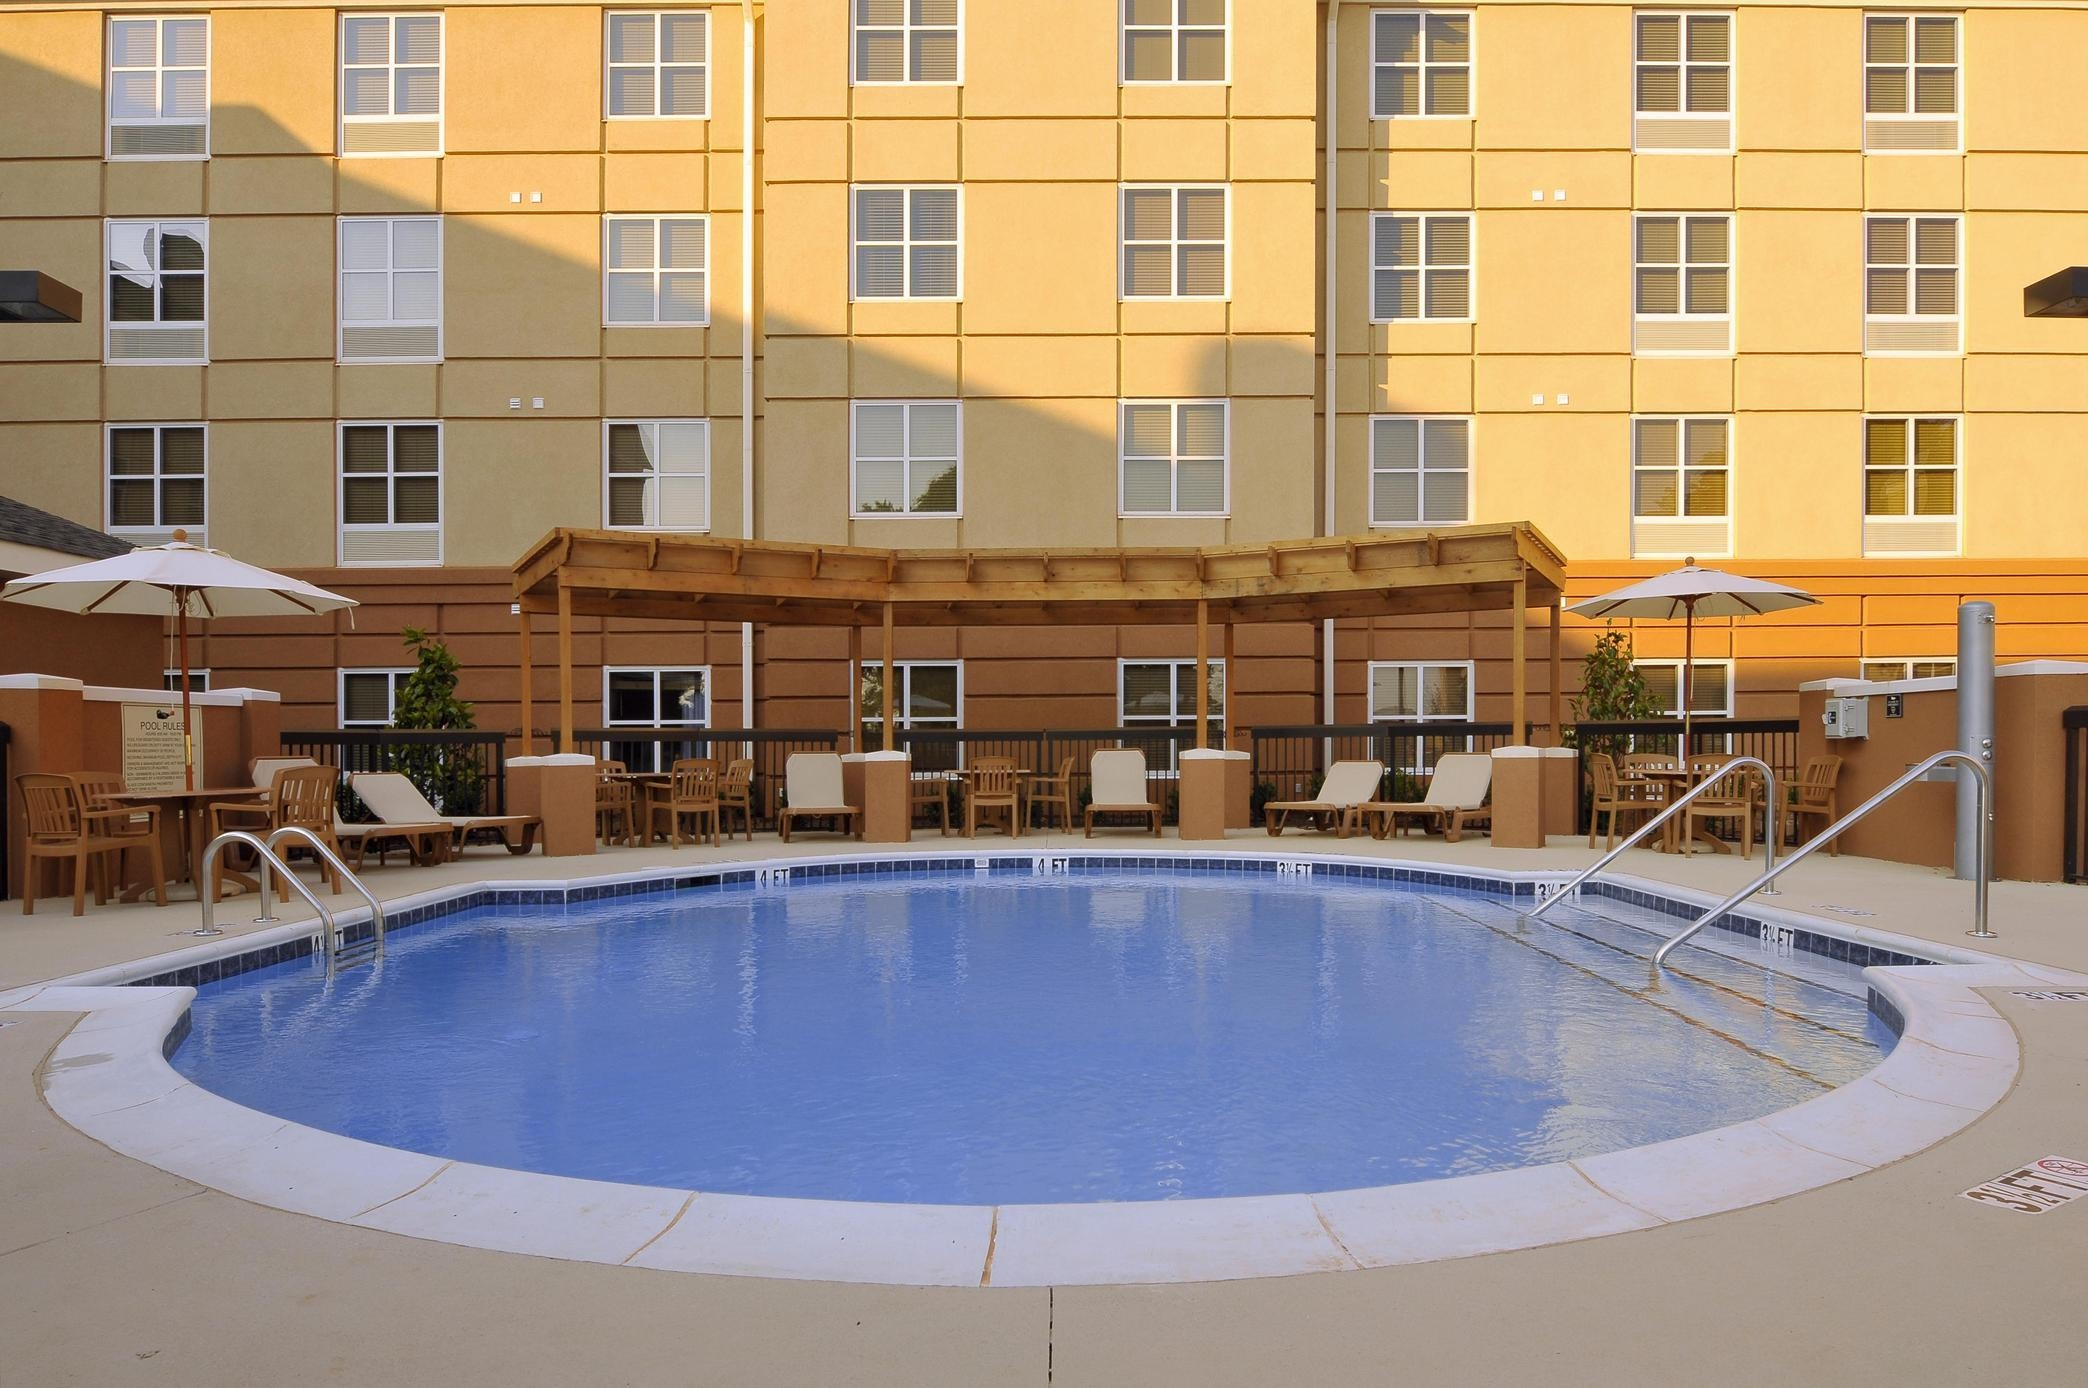 Homewood Suites By Hilton Greenville Greenville South